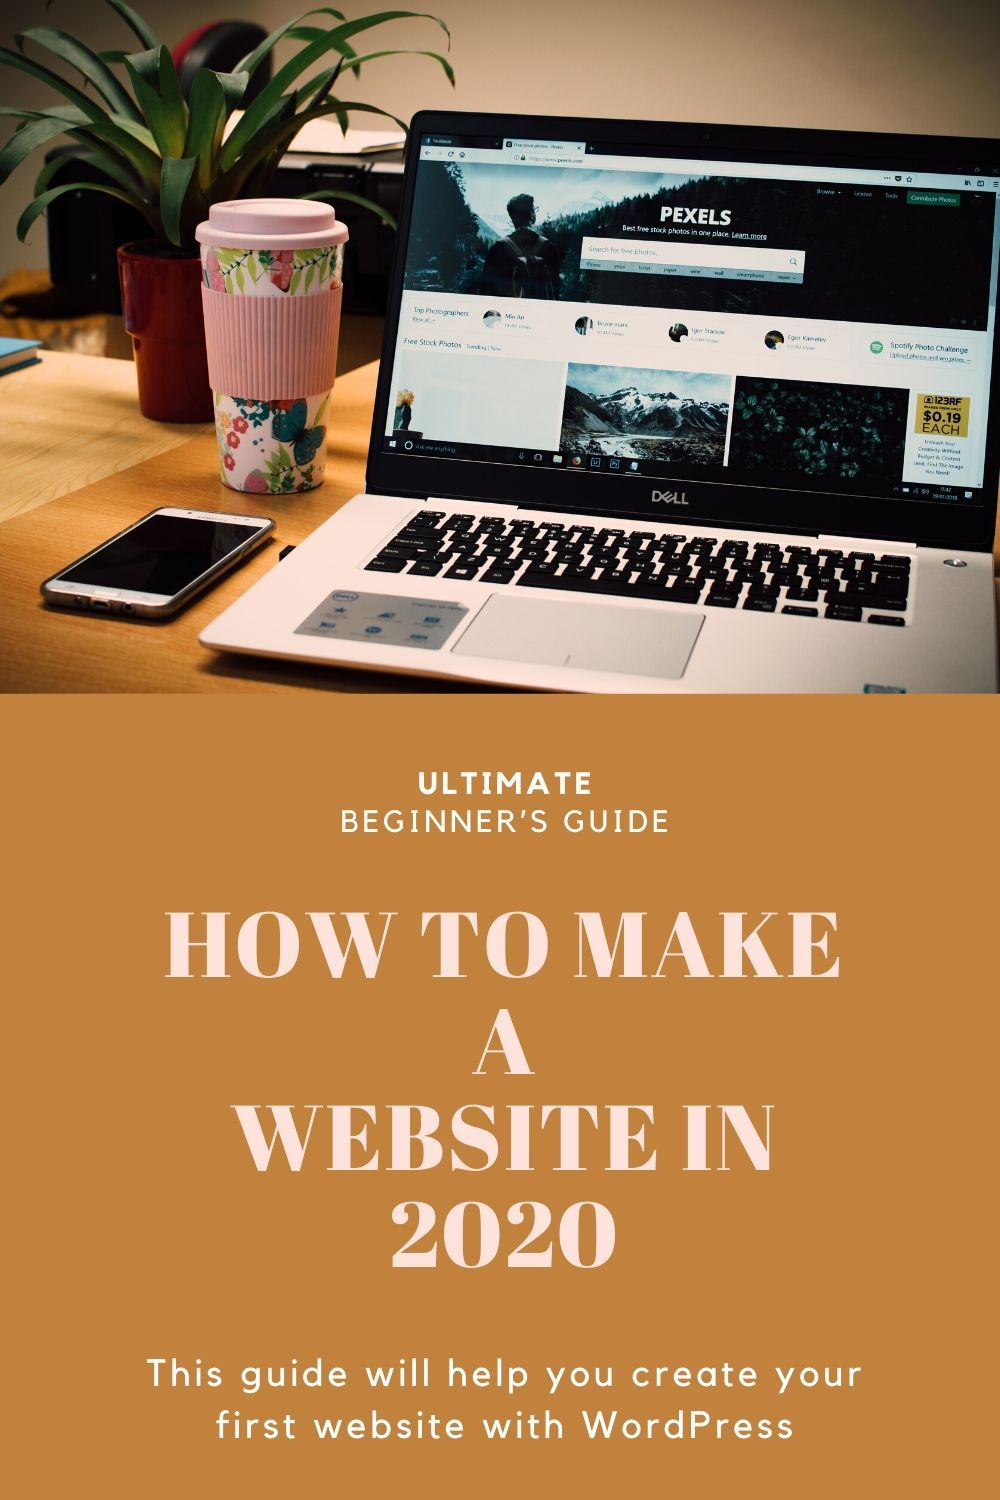 WordPress For Beginners Tutorial How To Guide in 2020